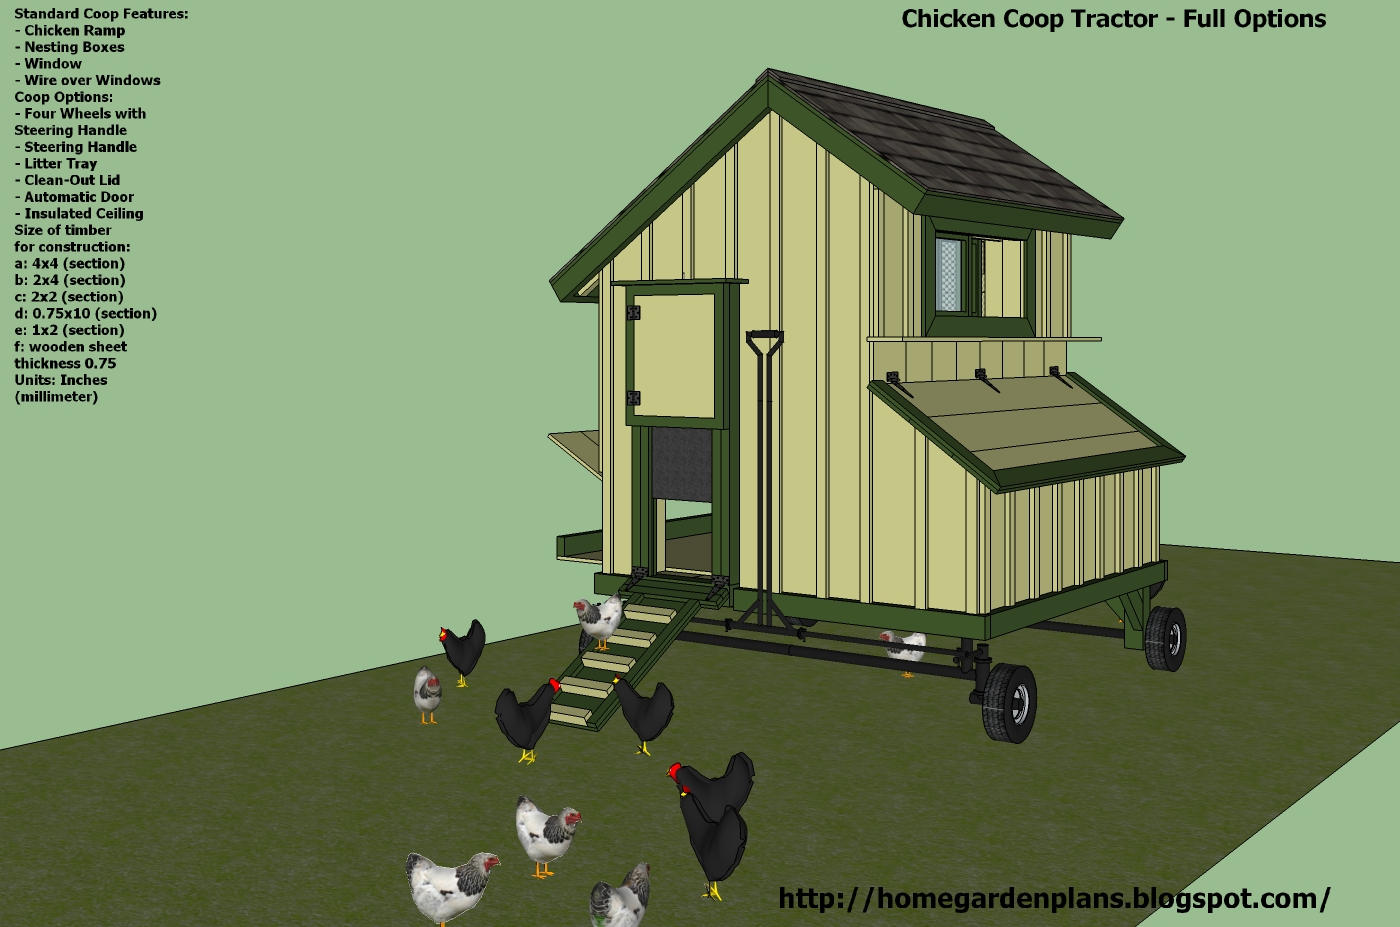 Billy easy wooden tractor plans wood plans us uk ca for Chicken tractor building plans